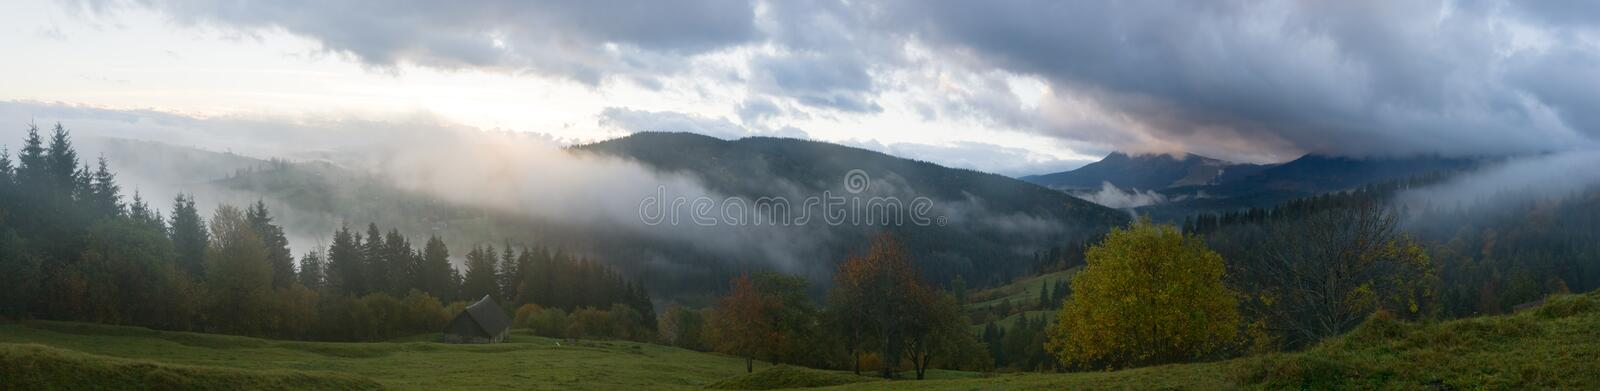 Daybreak in mountain. Misty early daybreak in autumn Carpathian mountain, Ukraine. Ten shots stitch image royalty free stock images